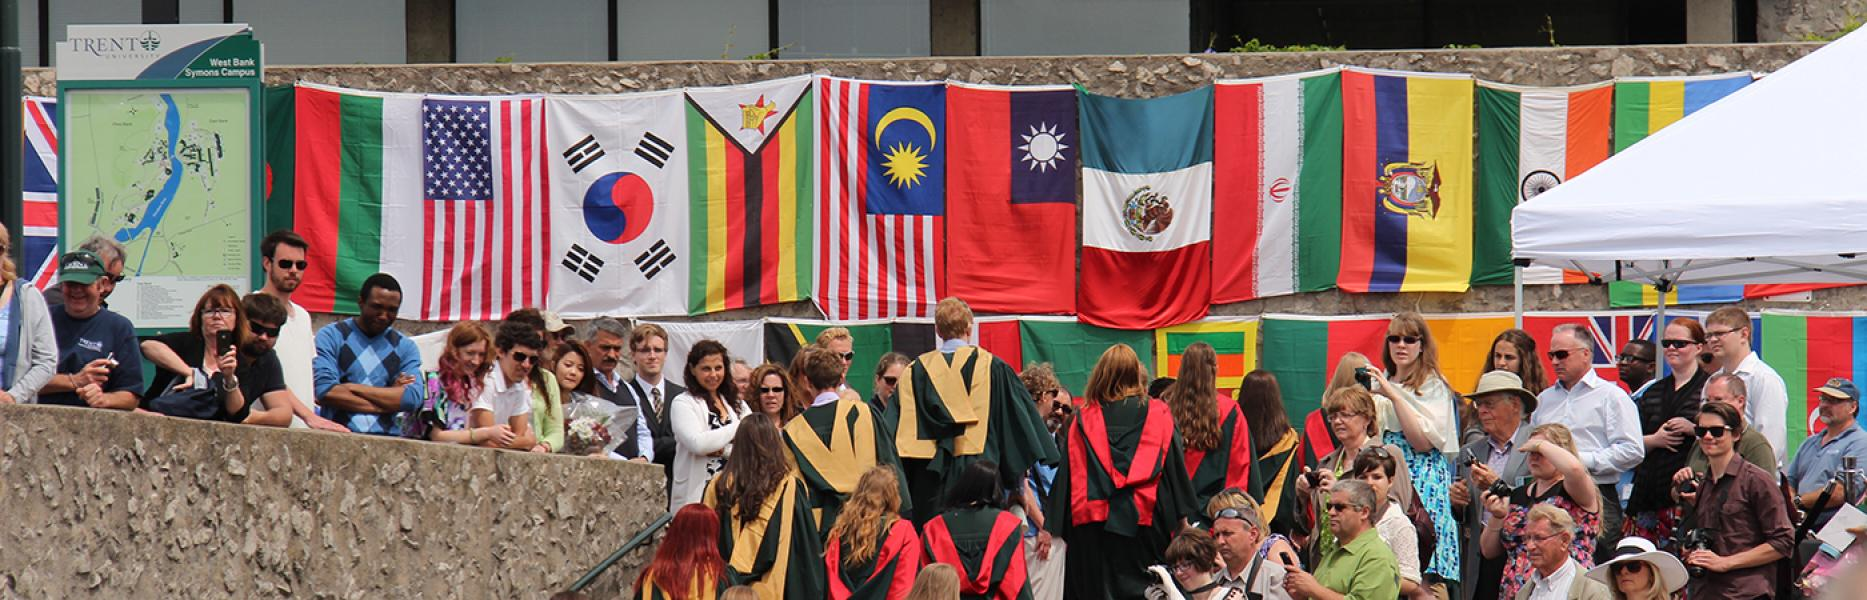 Convocation at Trent with many flags from around the world hanging